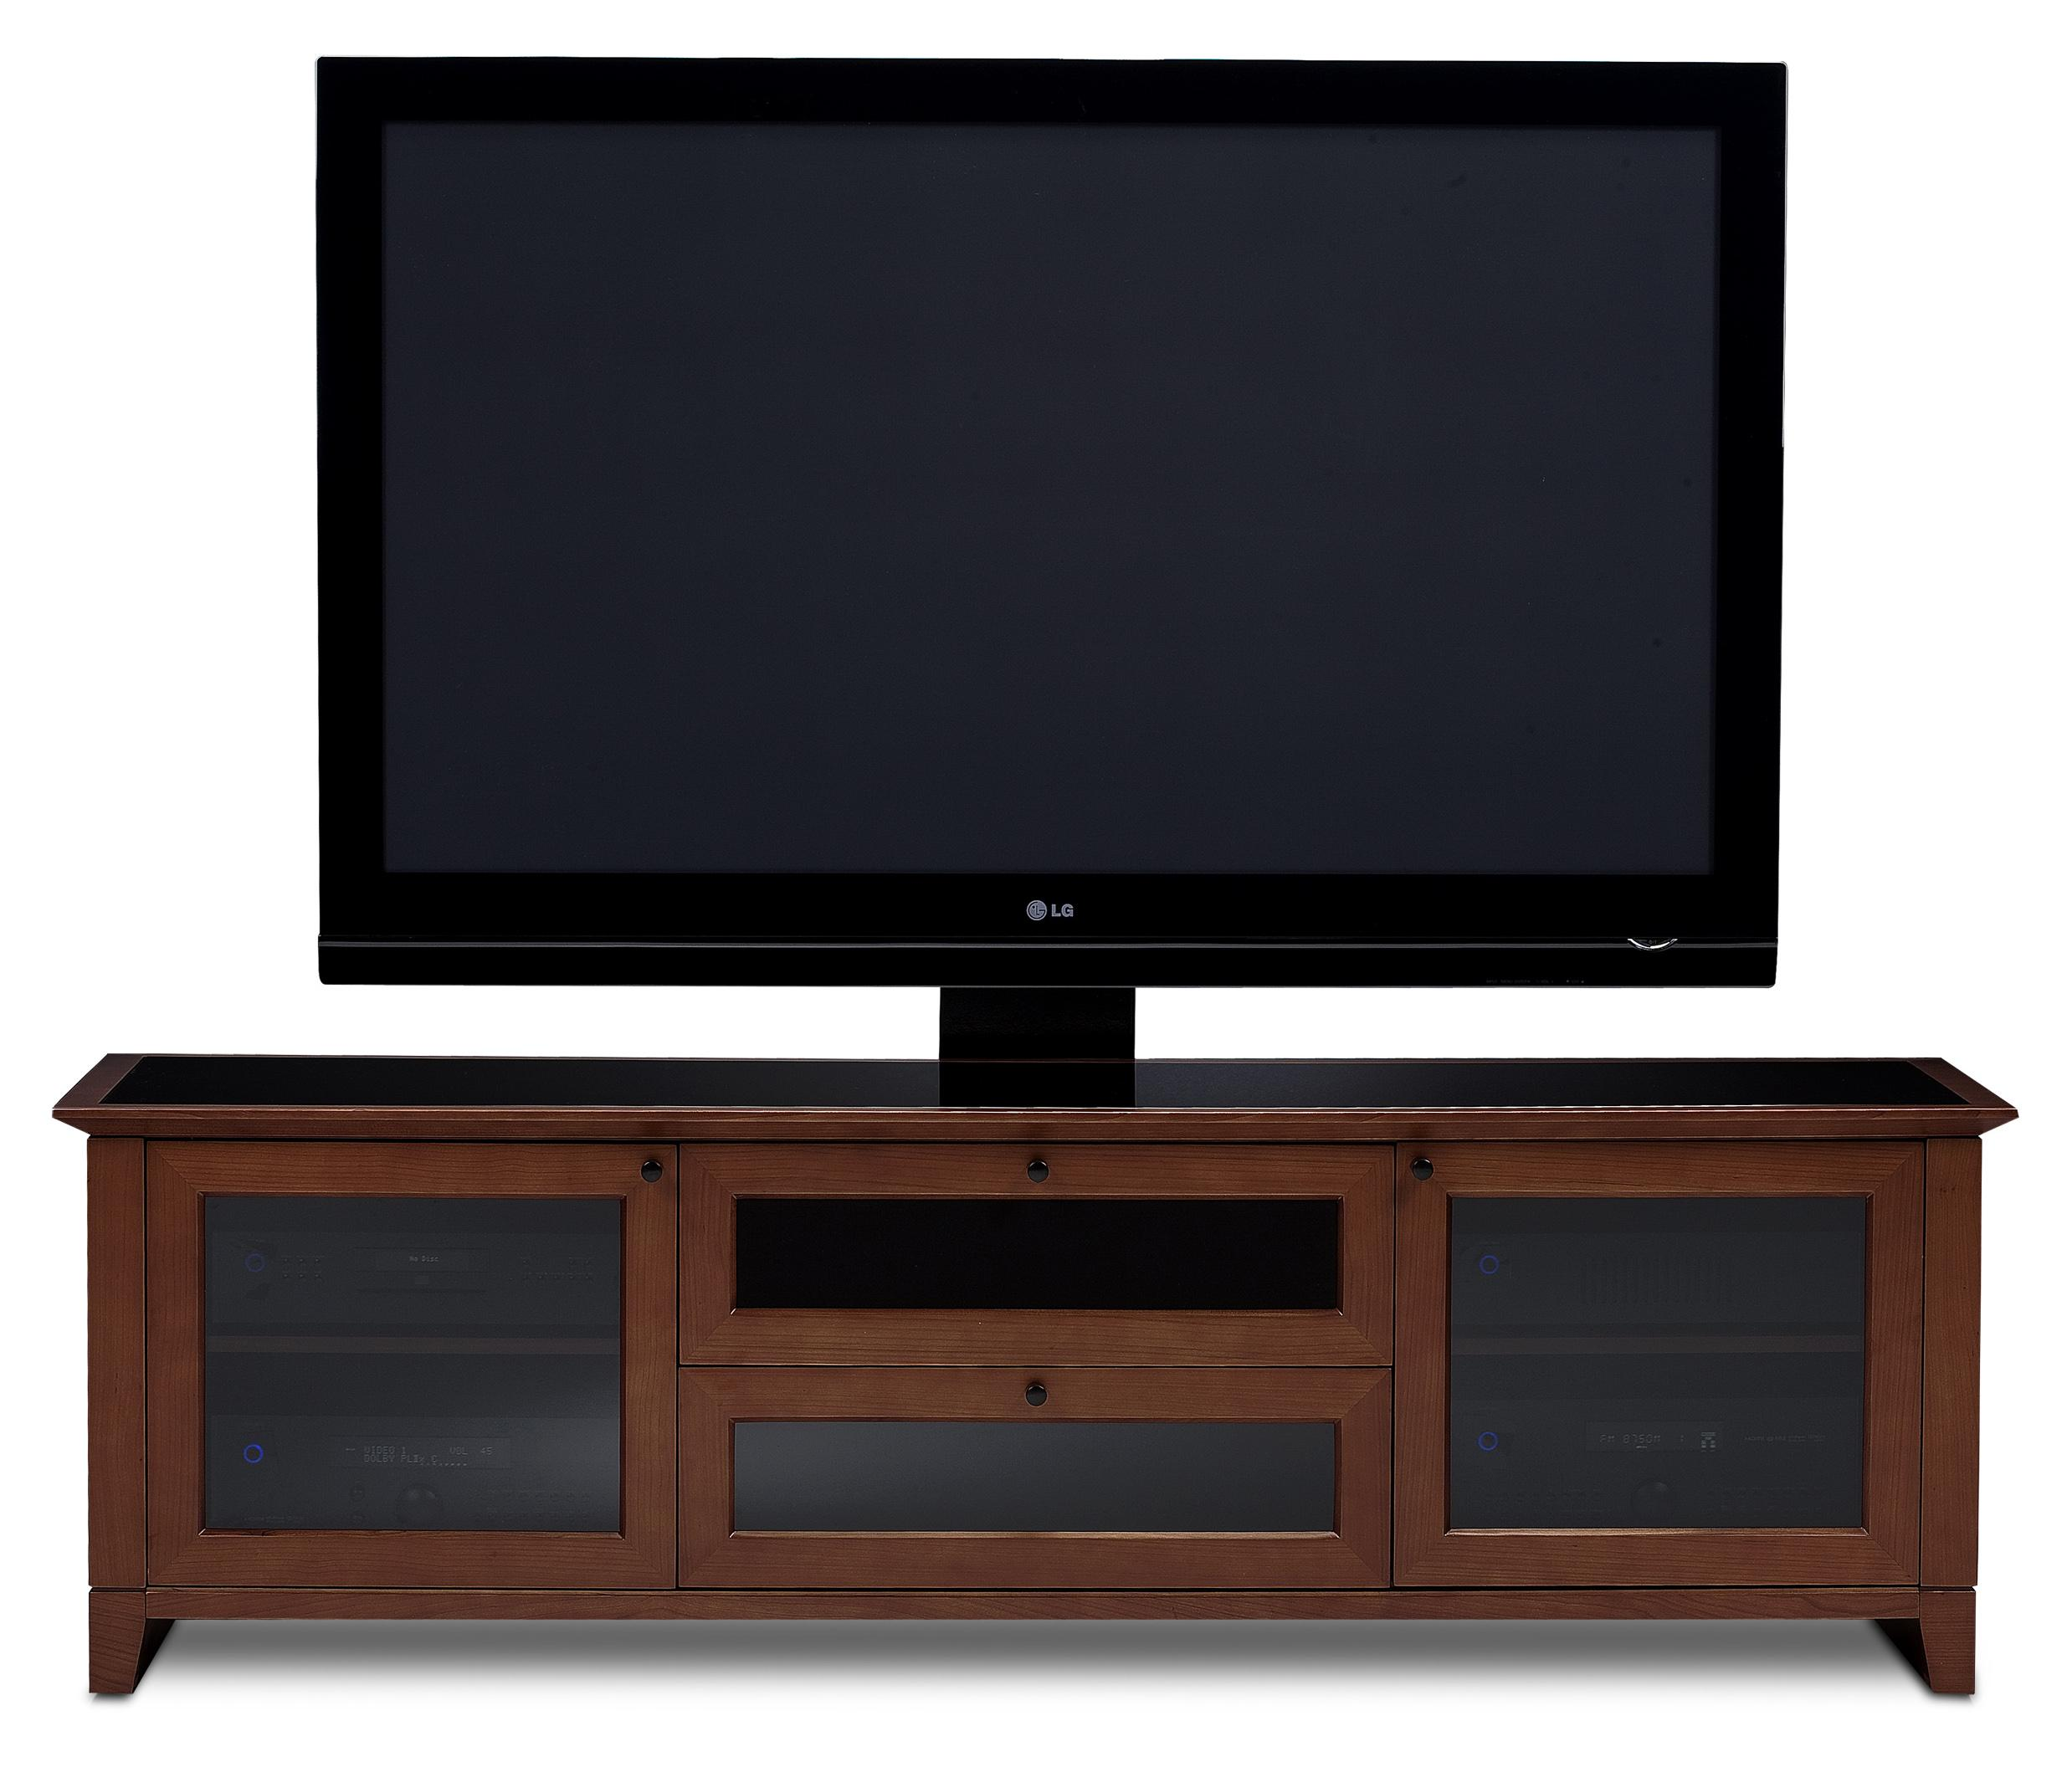 BDI Novia Home Theater Cabinet - Item Number: 8429-2 Cocoa